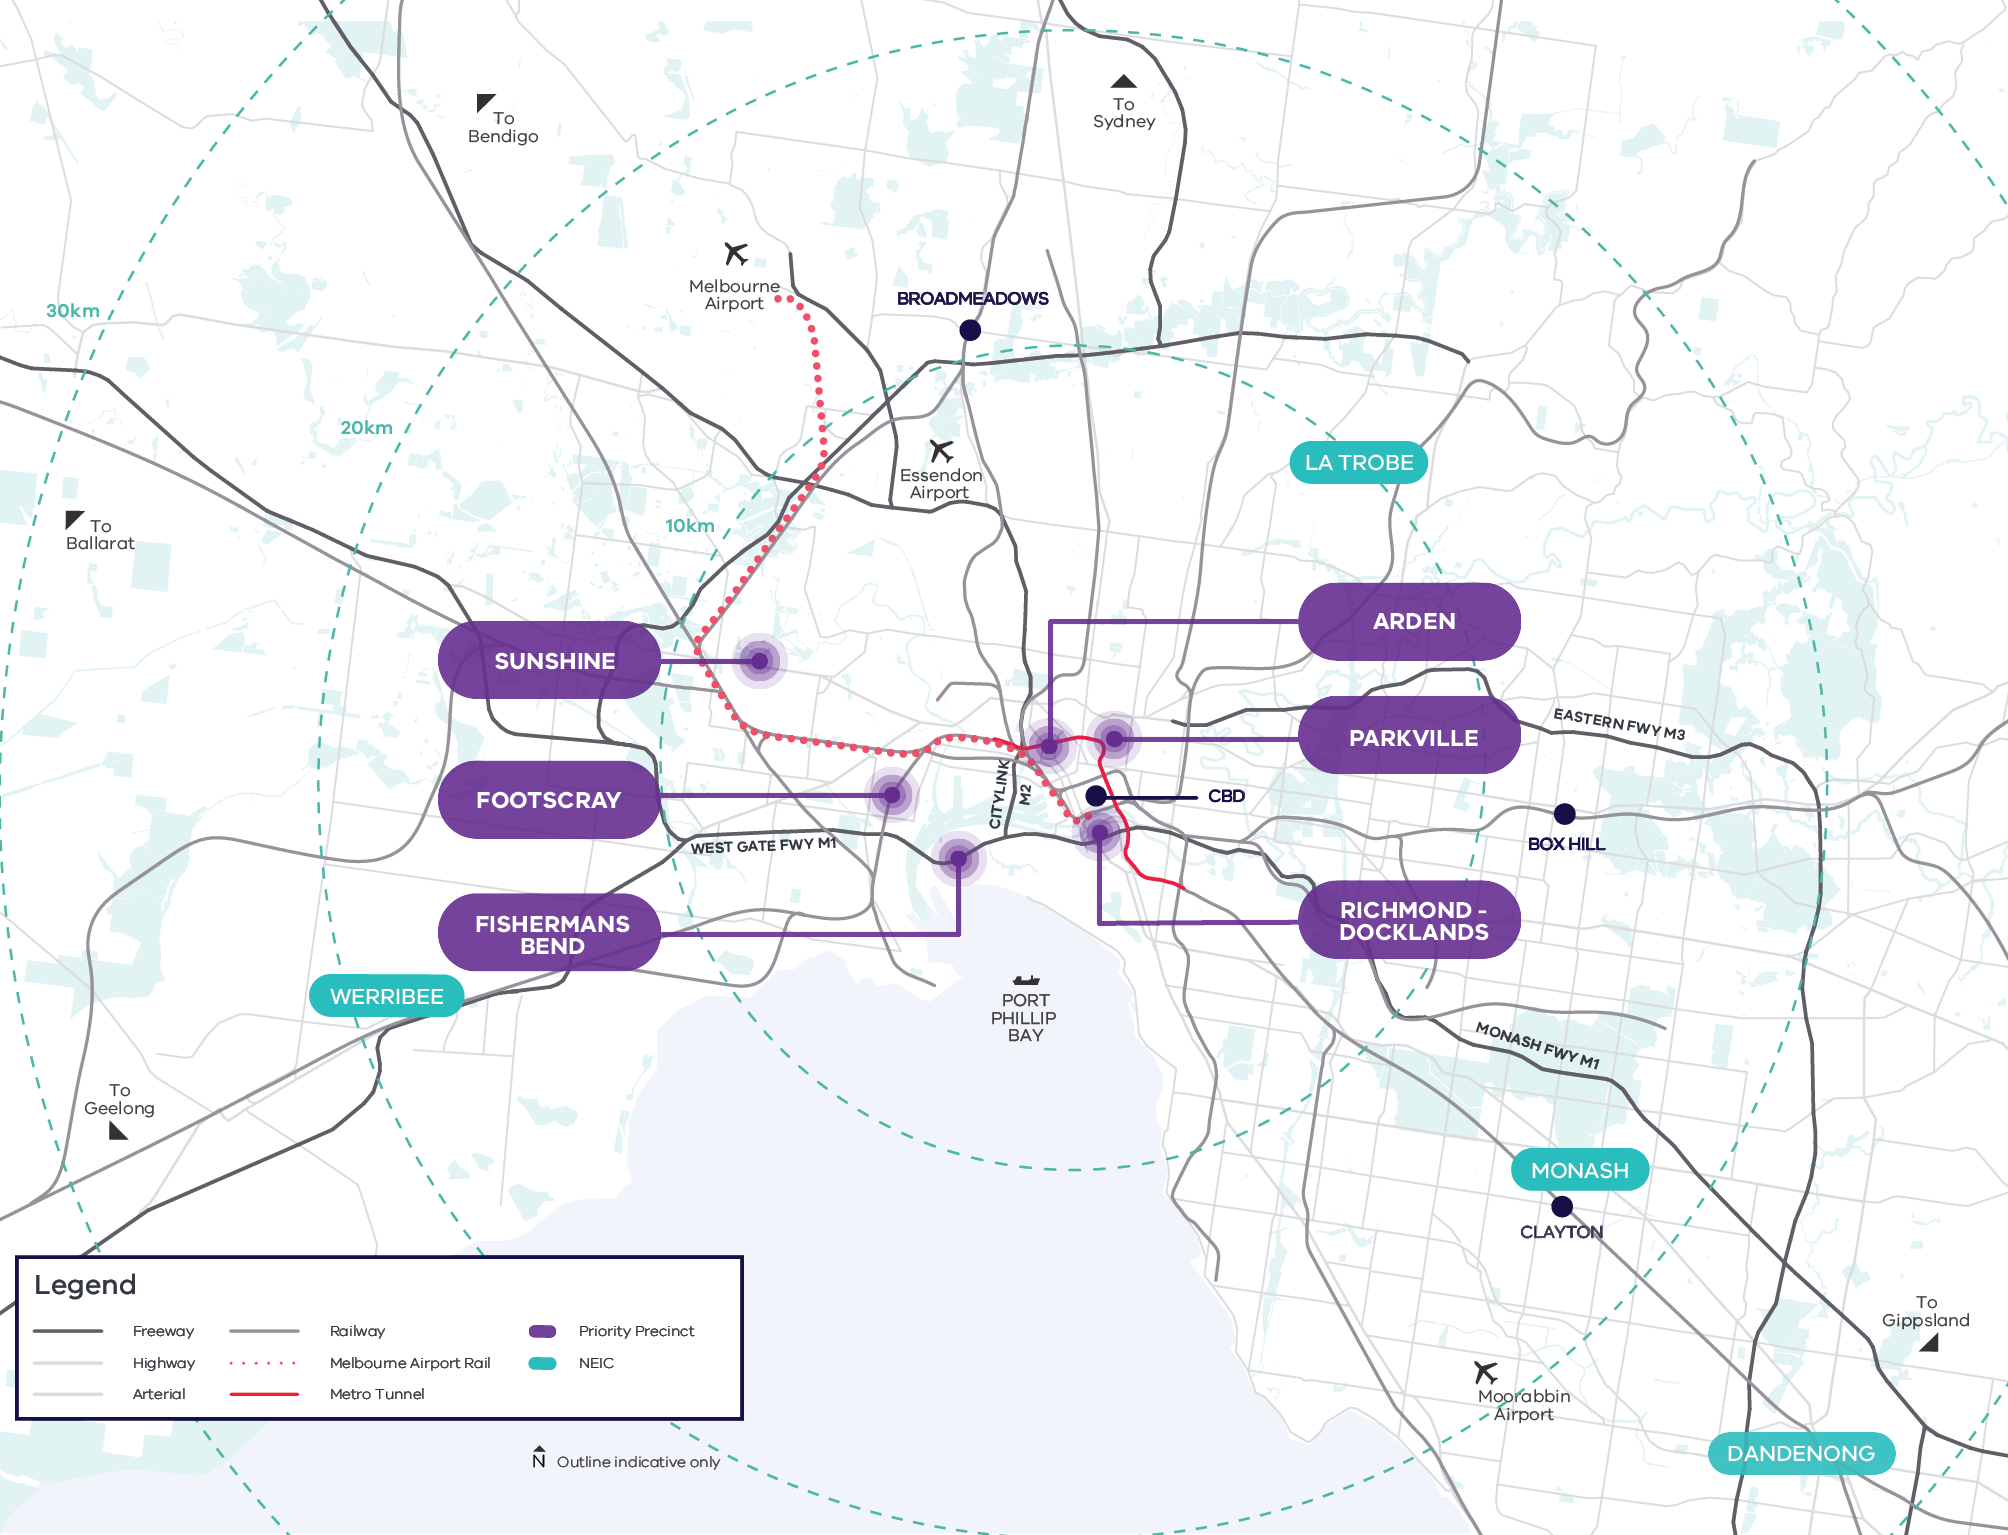 Melbourne-Priority-Precincts-map.png